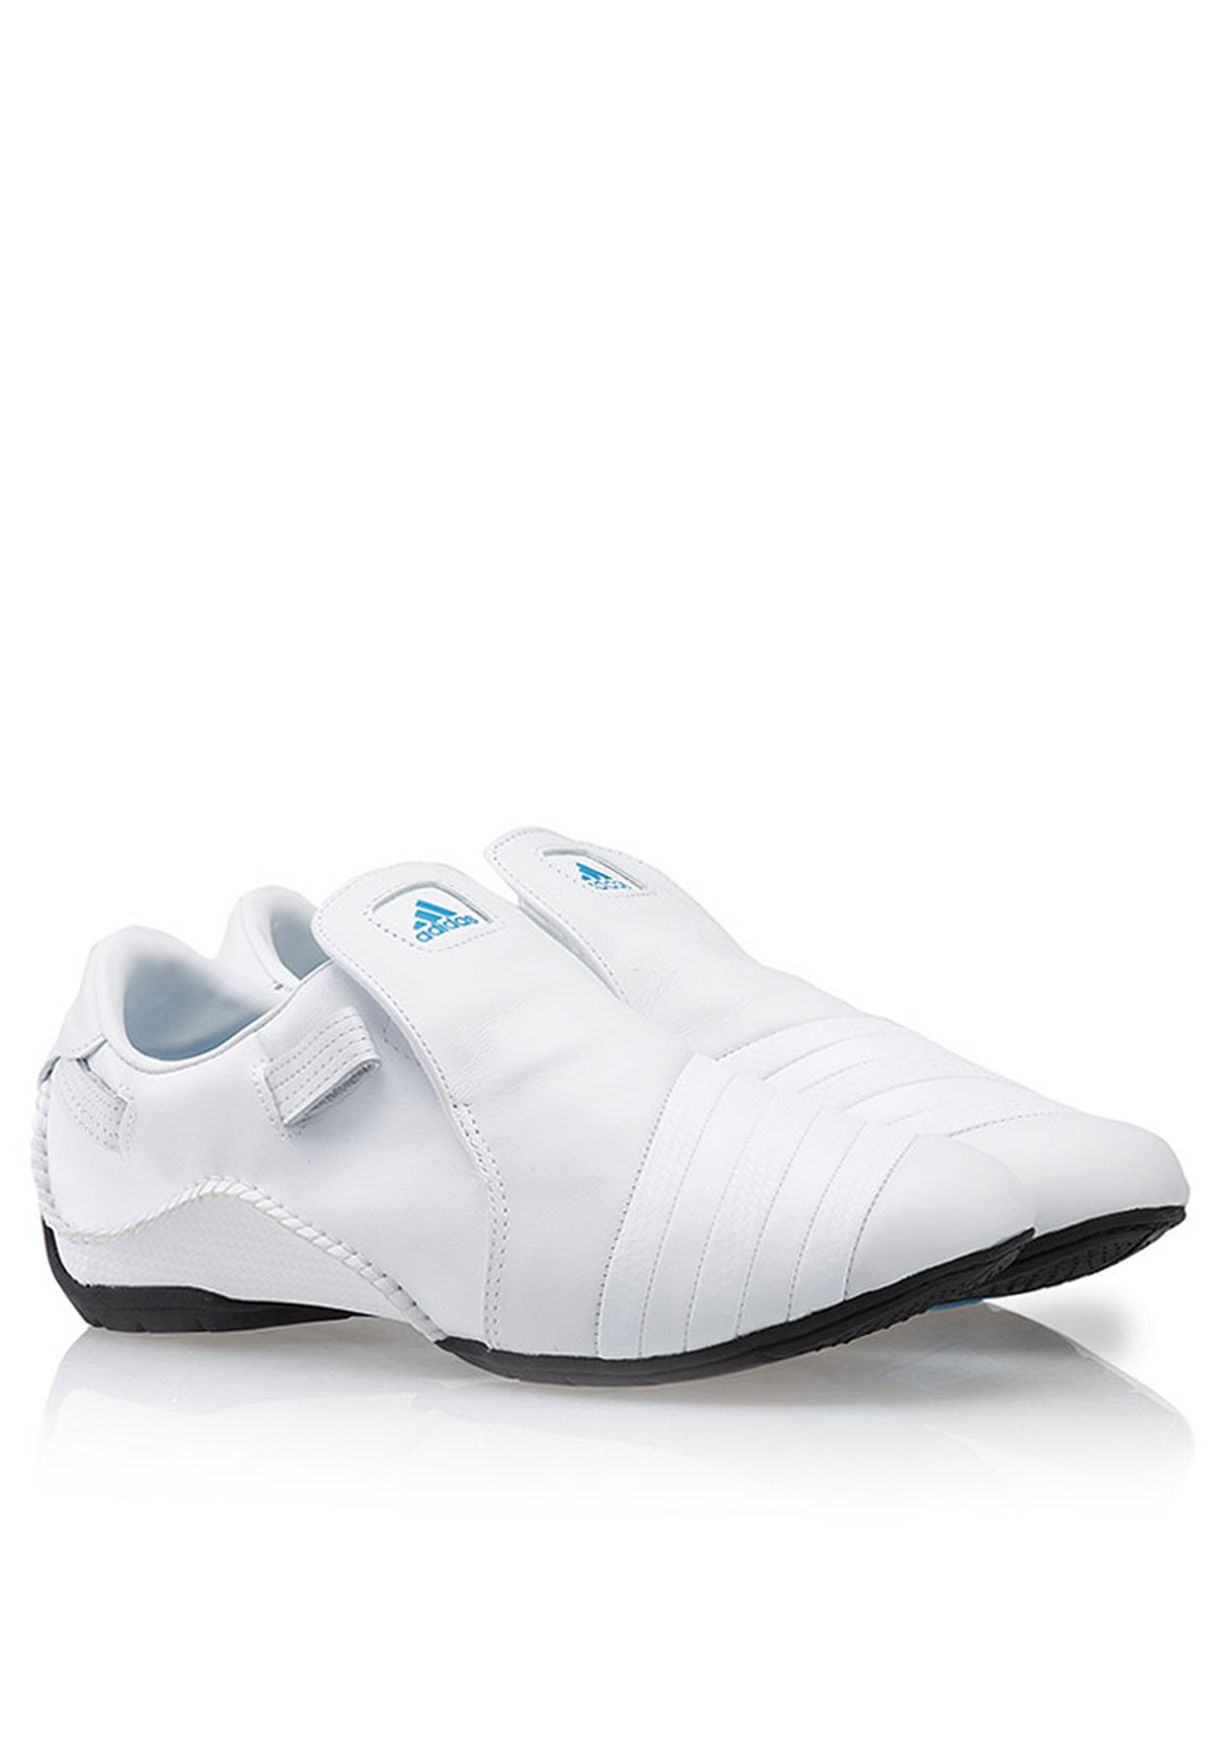 Shop adidas white Mactelo D65344 for Men in UAE - AD476SH21MUS 557c9d4e71858